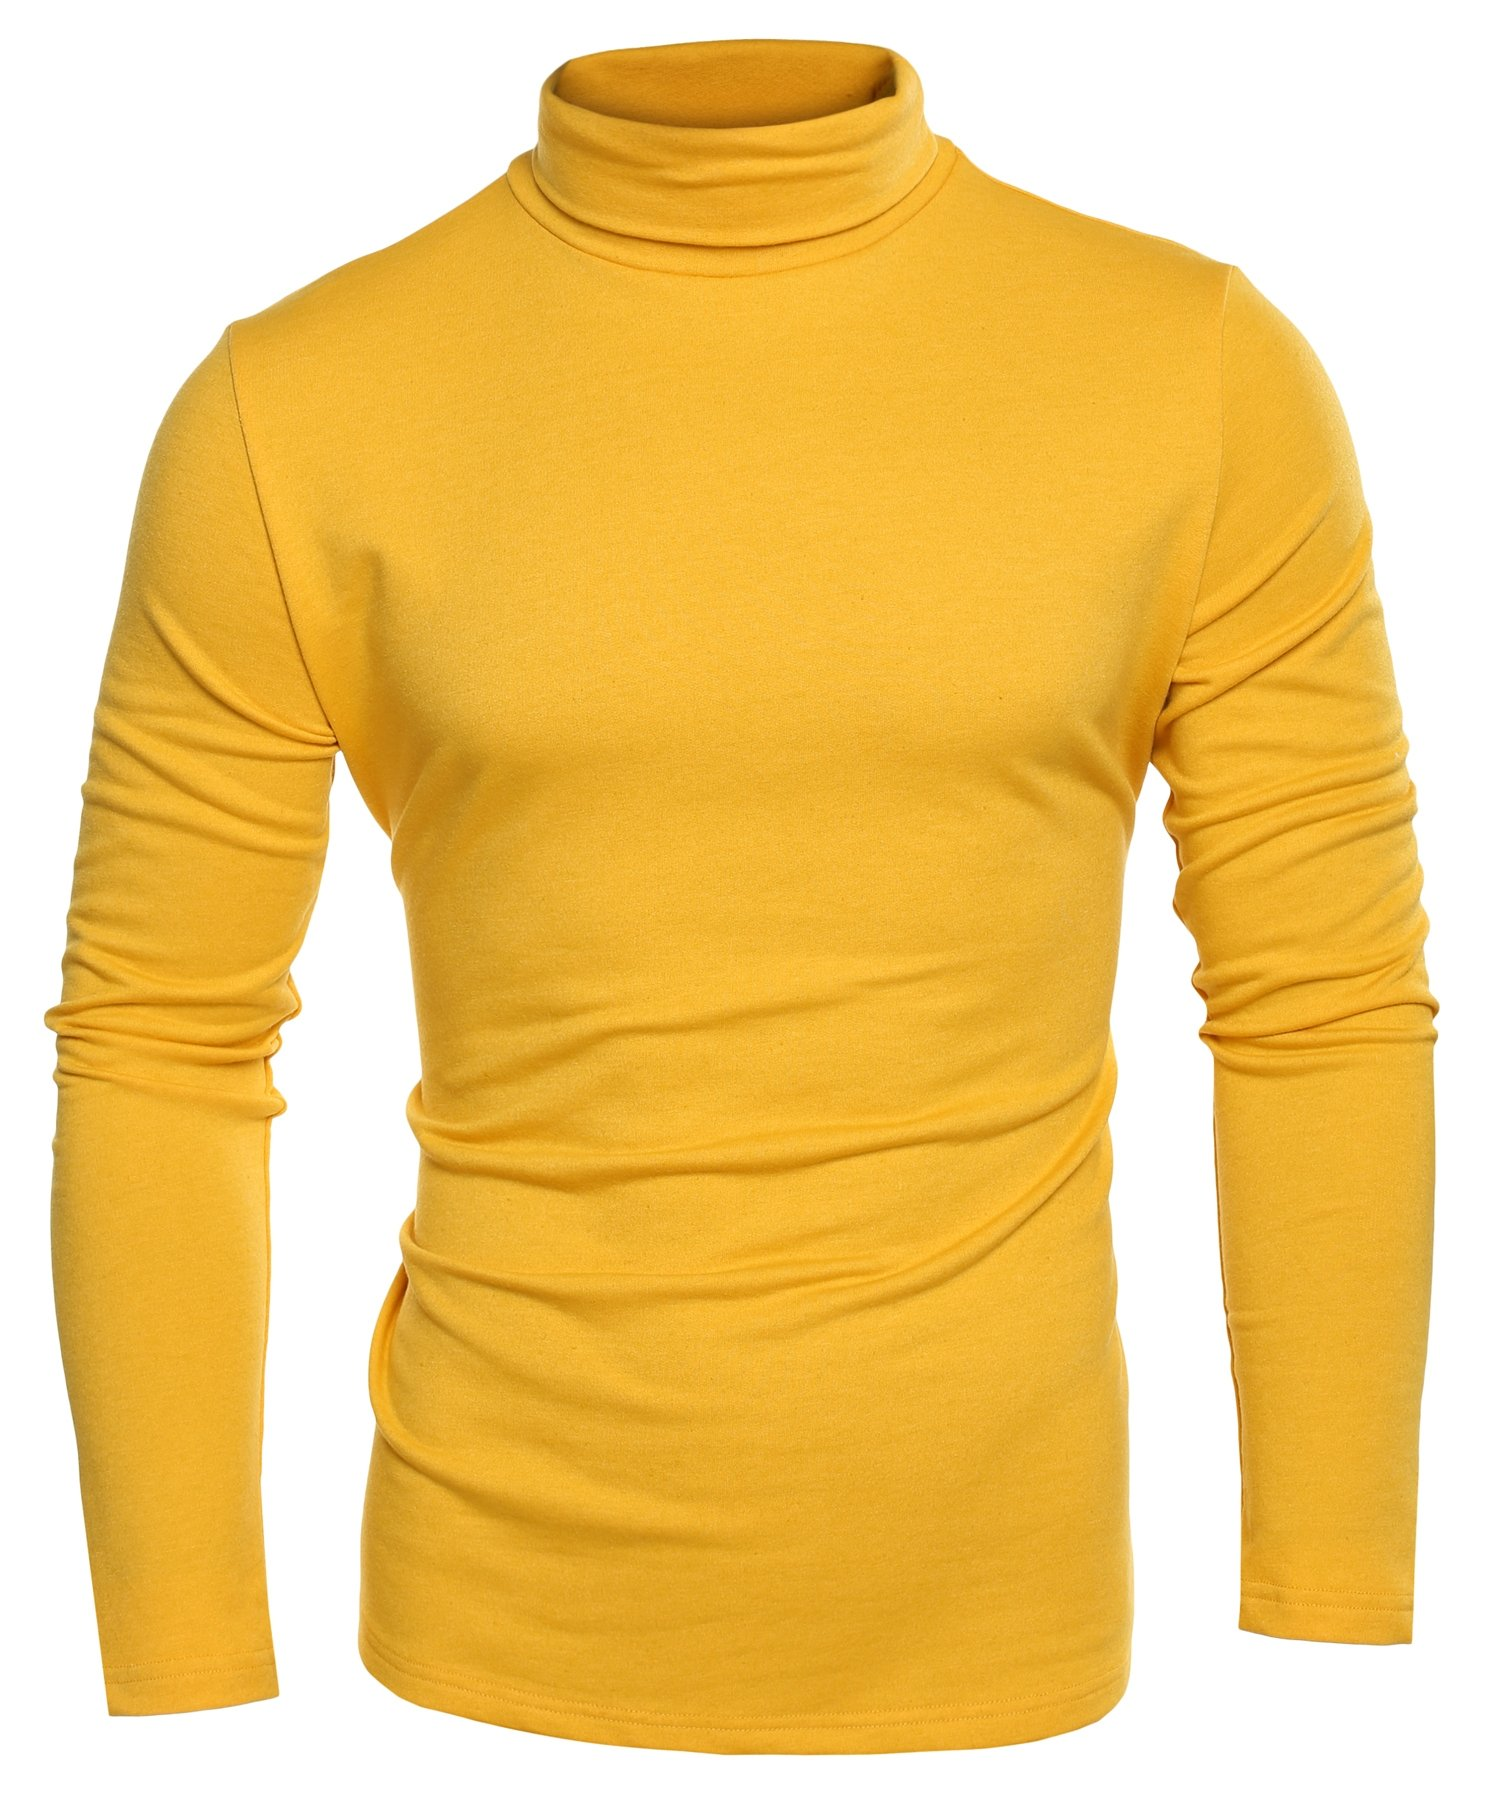 Coofandy Mens Casual Basic Thermal Turtleneck Slim Fit Pullover Thermal Sweaters, Yellow, XXX-Large